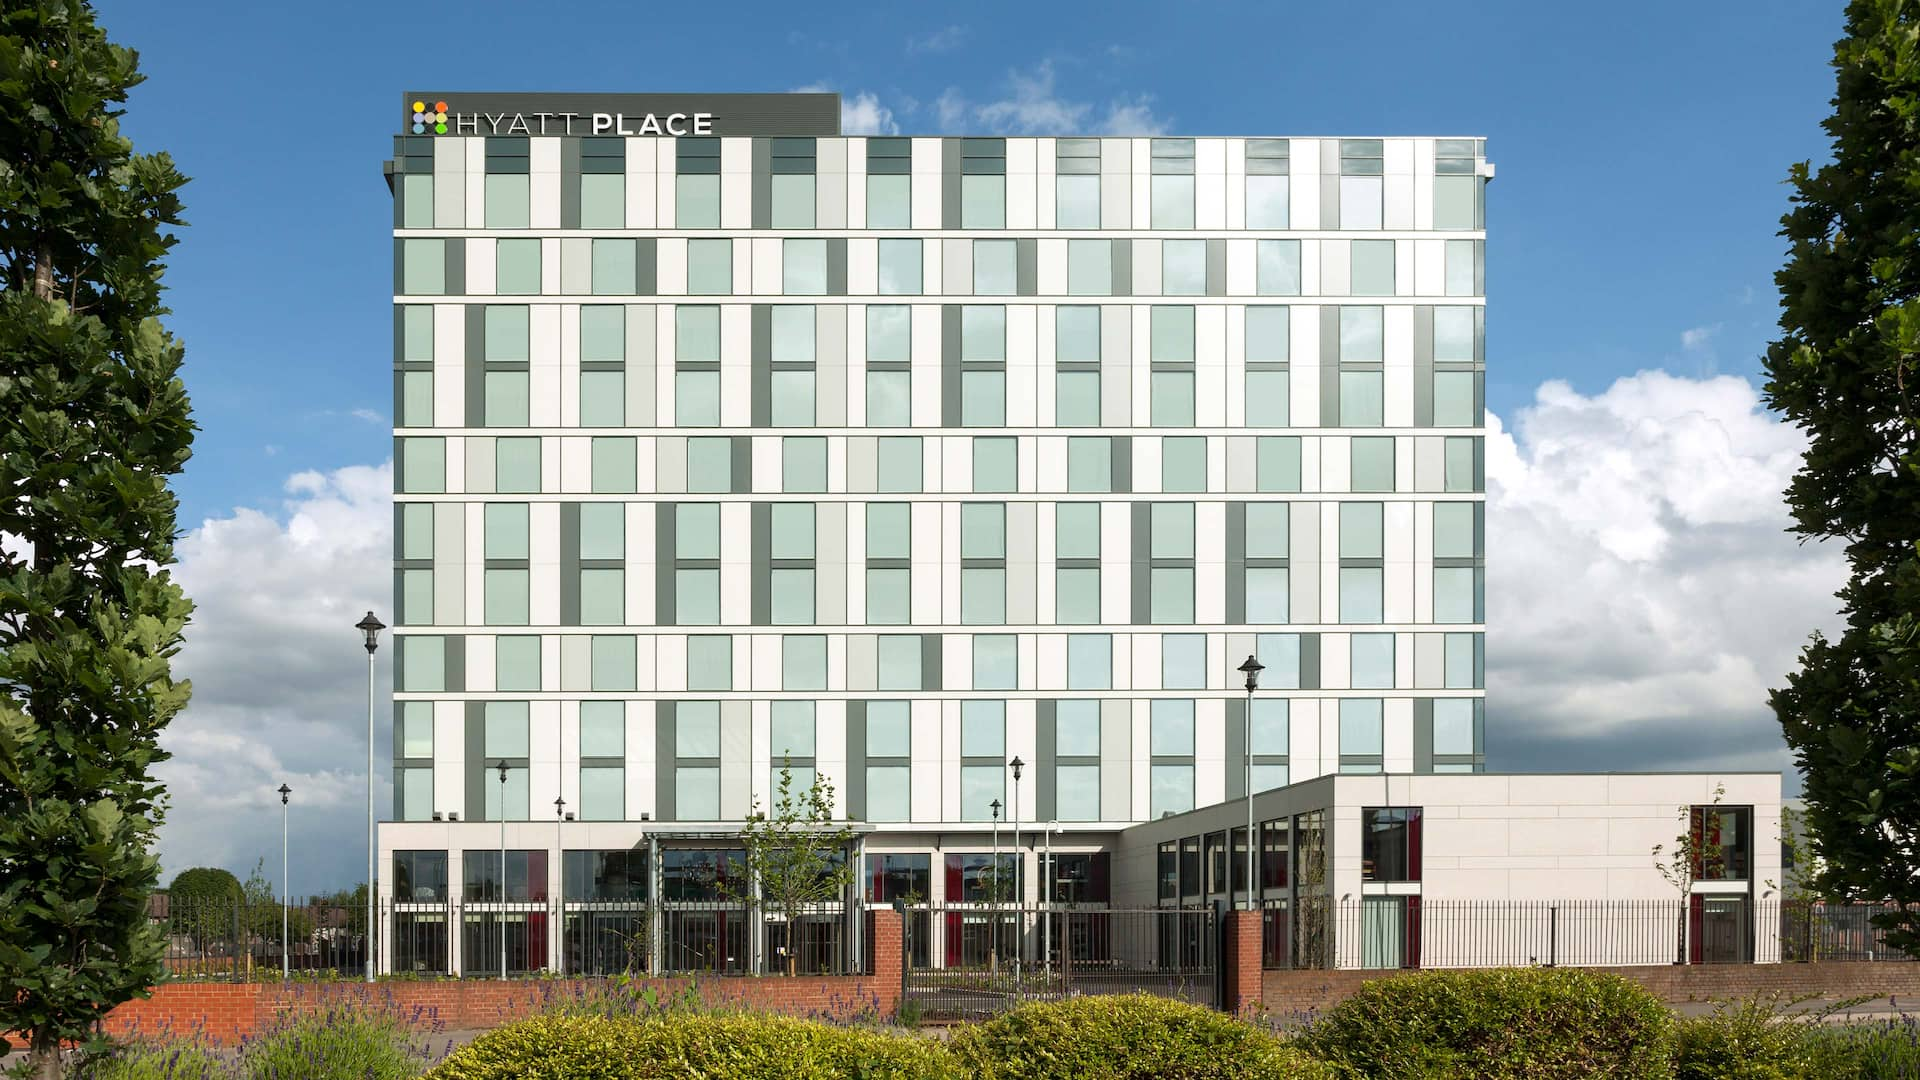 Hyatt Place West London/Hayes exterior